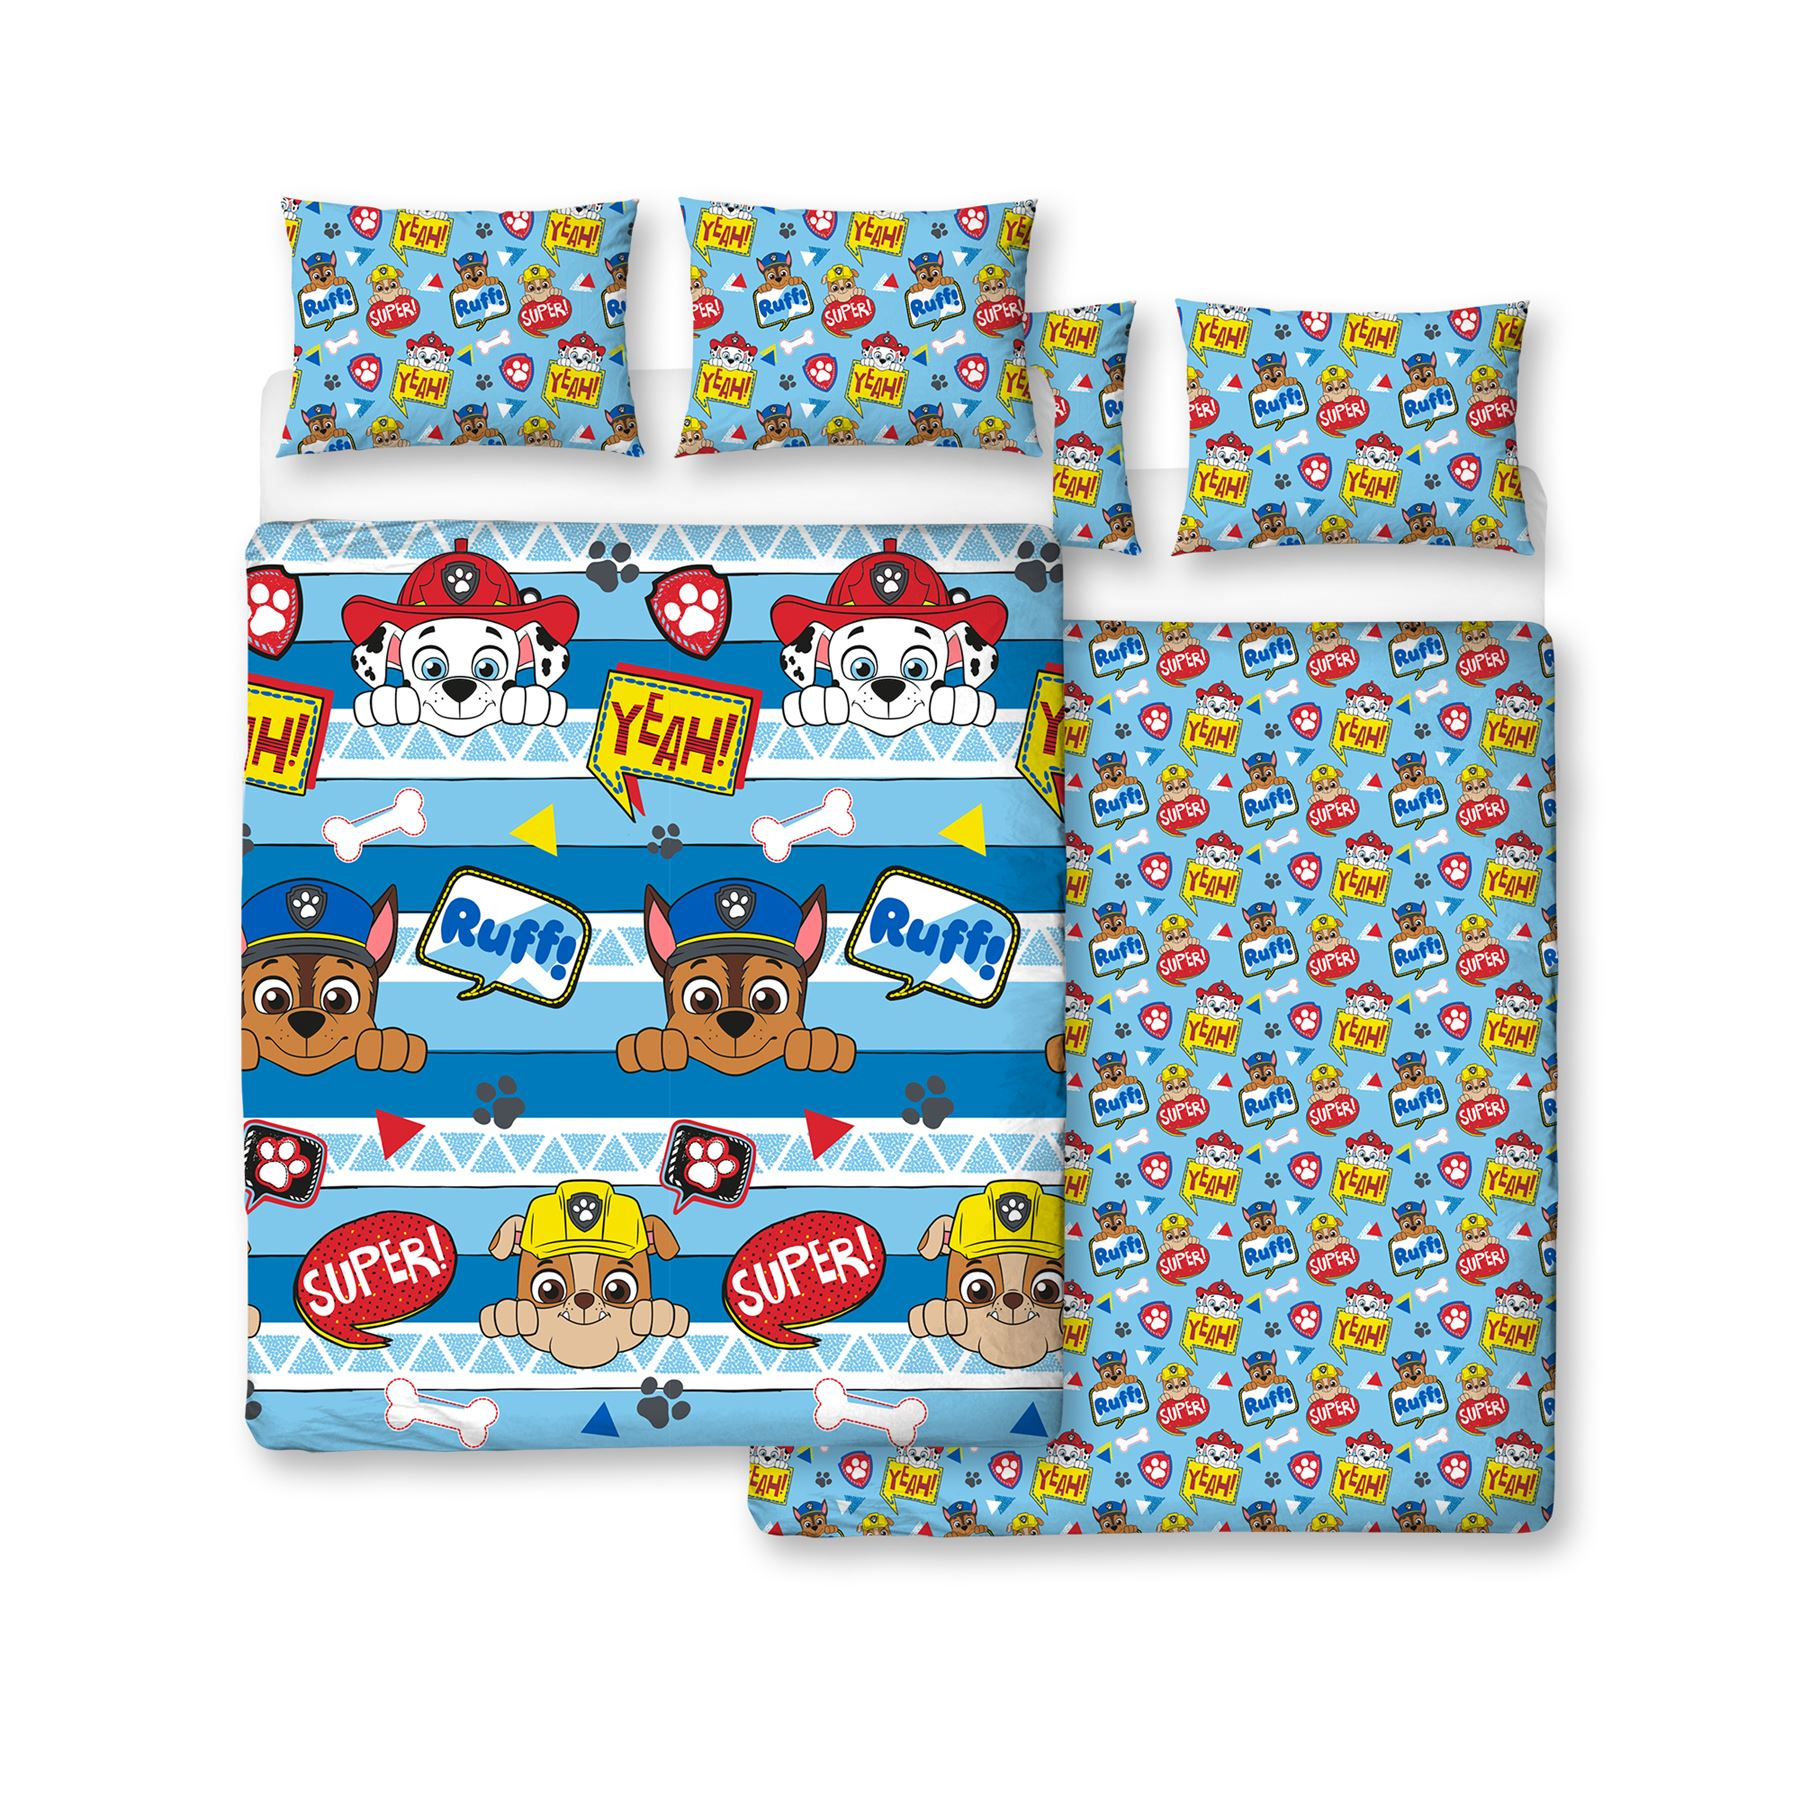 Official-Paw-Patrol-Licensed-Duvet-Covers-Single-Double-Chase-Skye-Marshall thumbnail 27